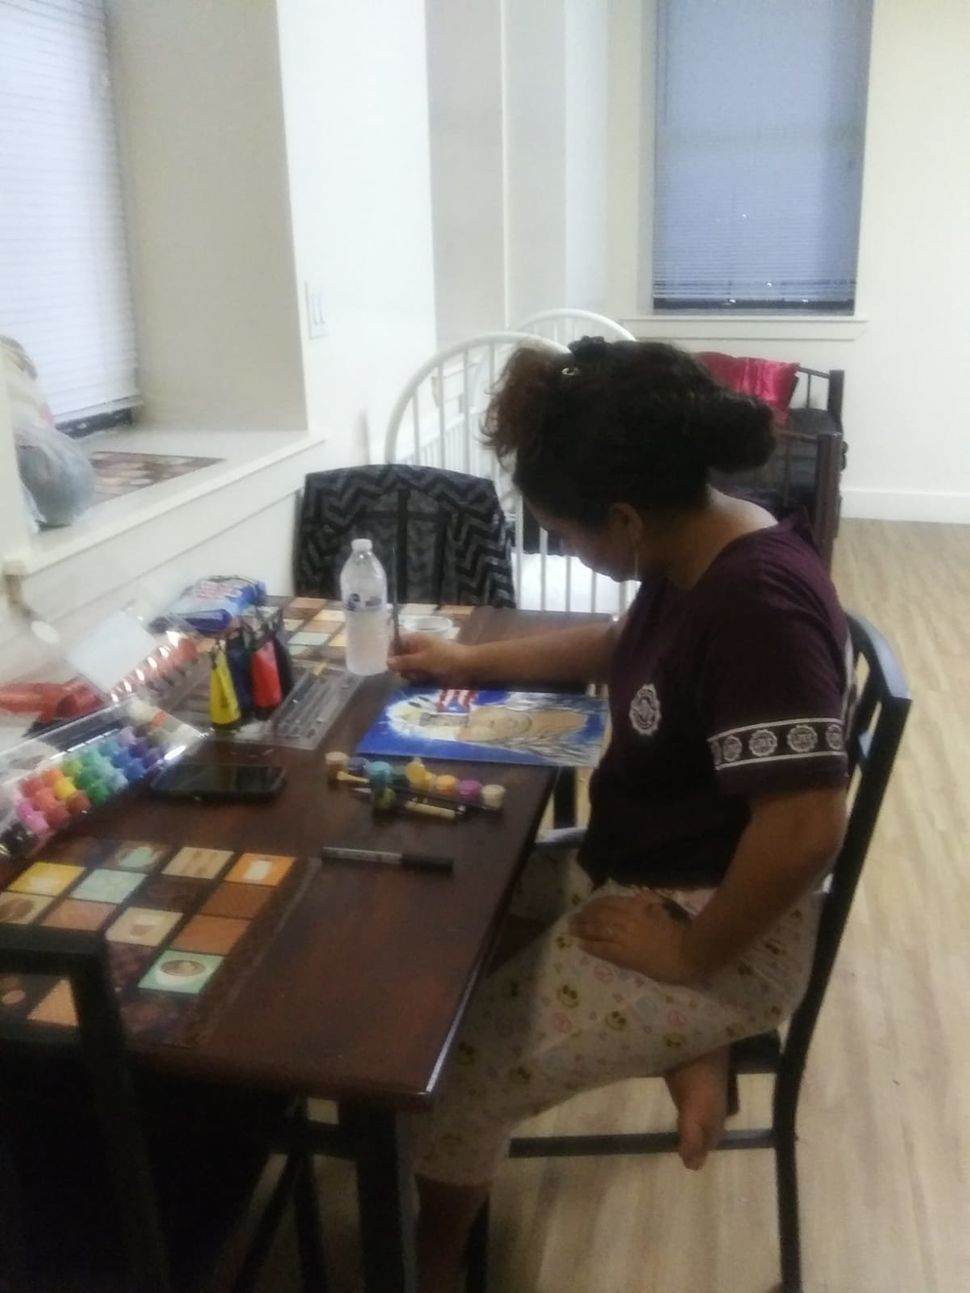 Jennyfer's daughter, 14, painting at the table in their room at the Bronx shelter